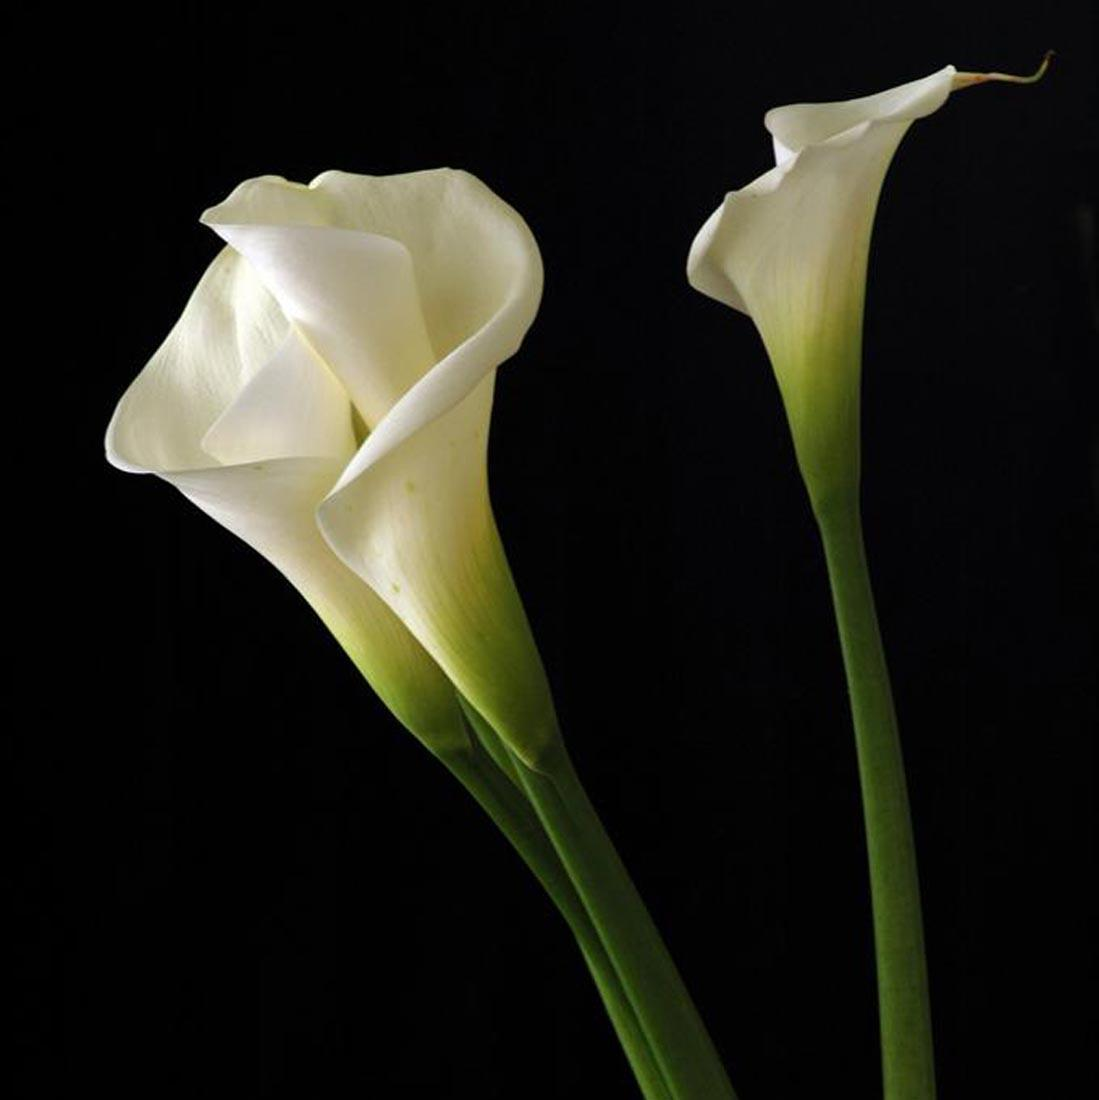 Imported calla lilies view specifications details of lily flower imported calla lilies izmirmasajfo